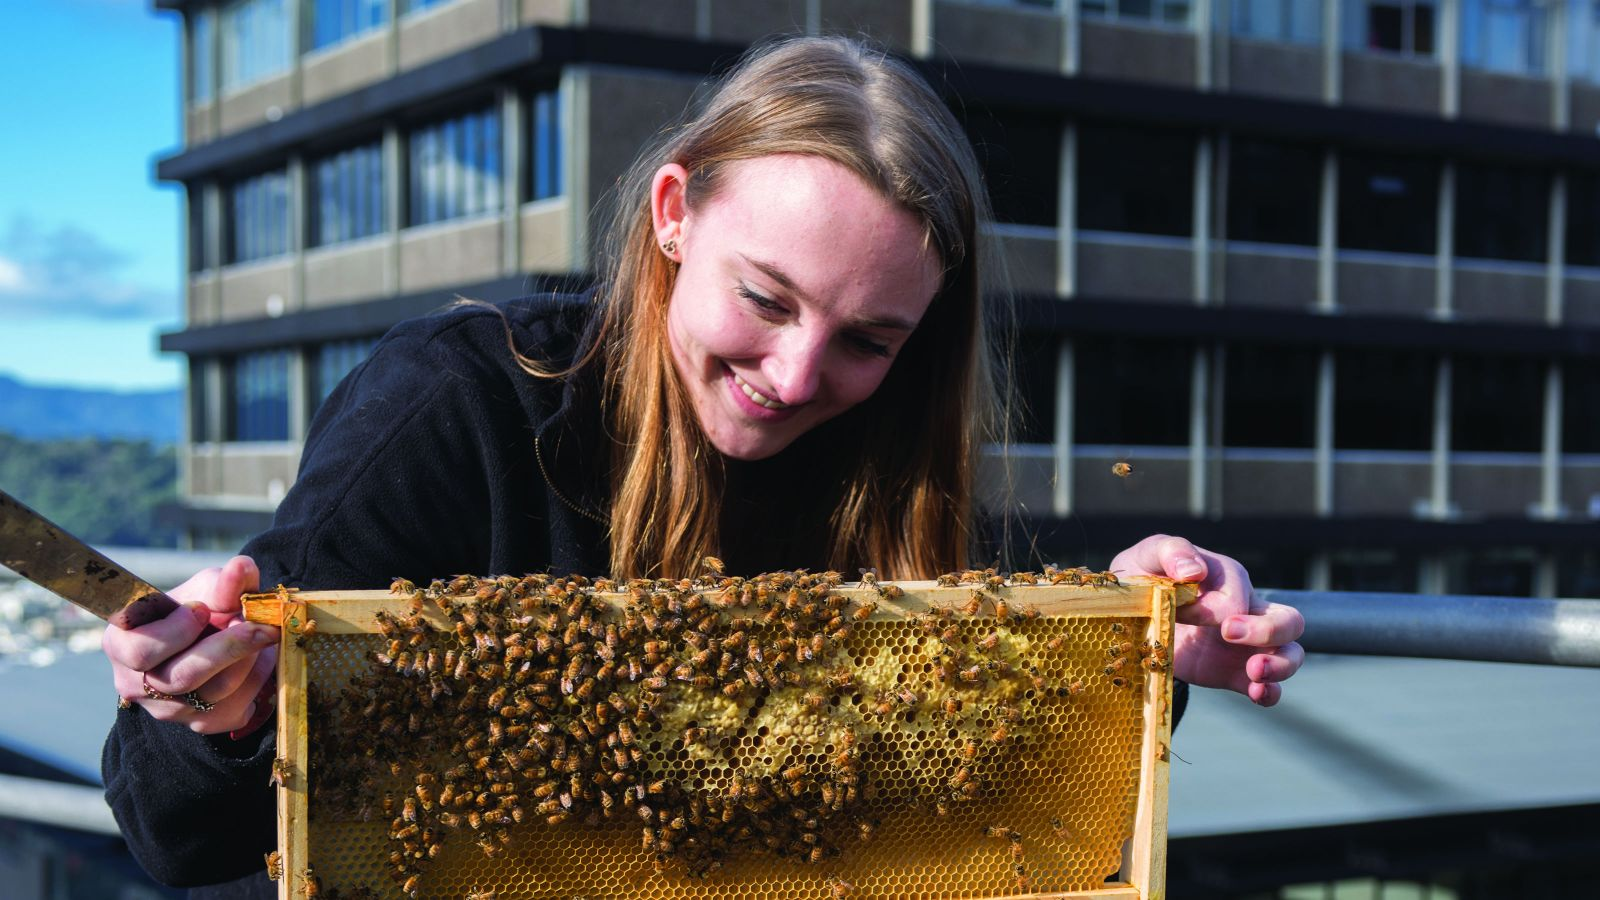 Jess holds a panel of bees and honey. Several bees fly around her. Behind her is blue sky and a building.